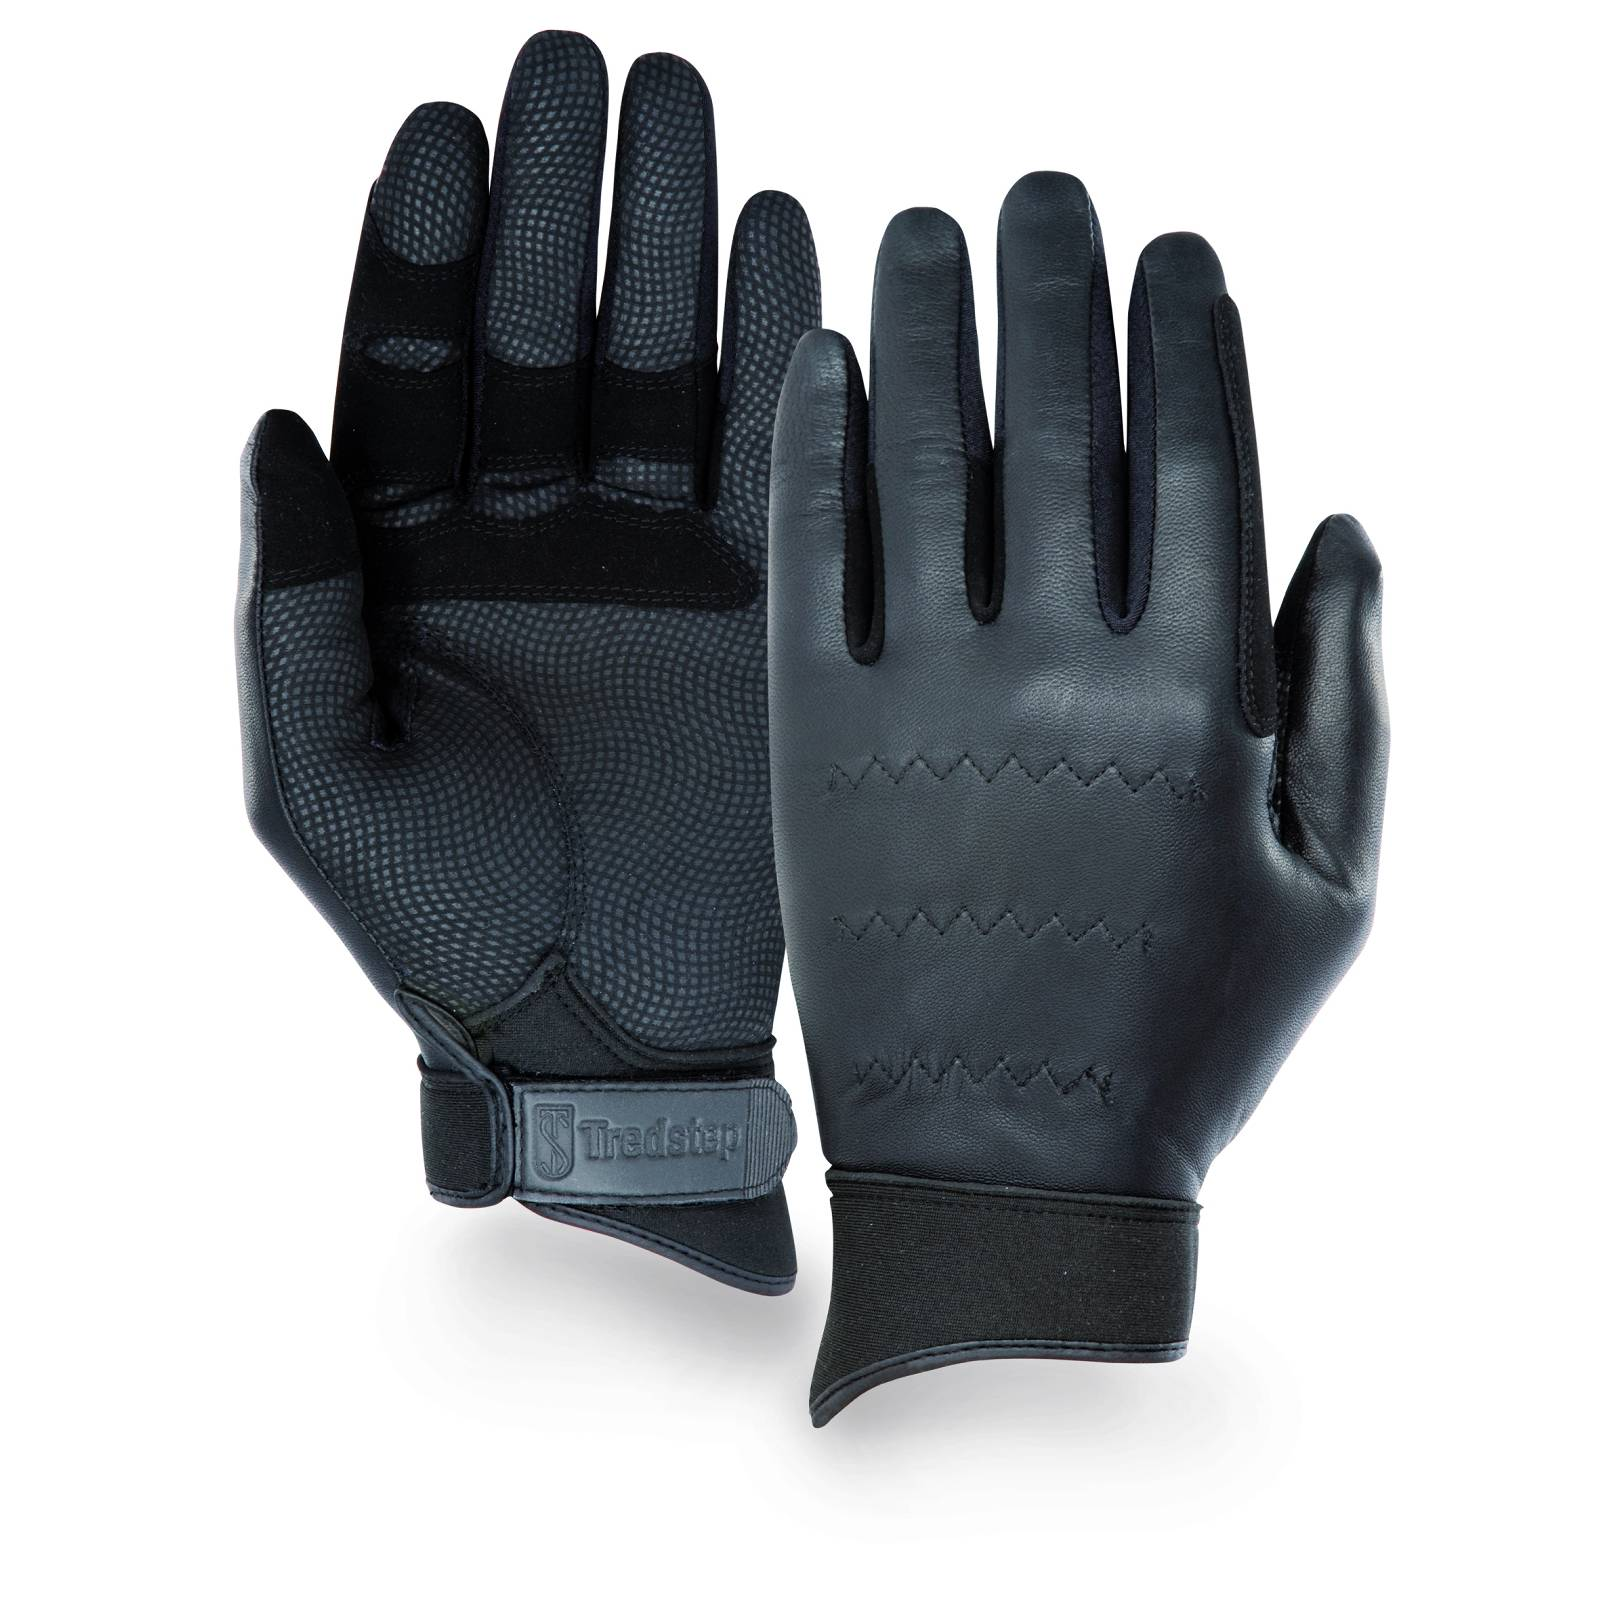 Tredstep Show Hunter Gloves